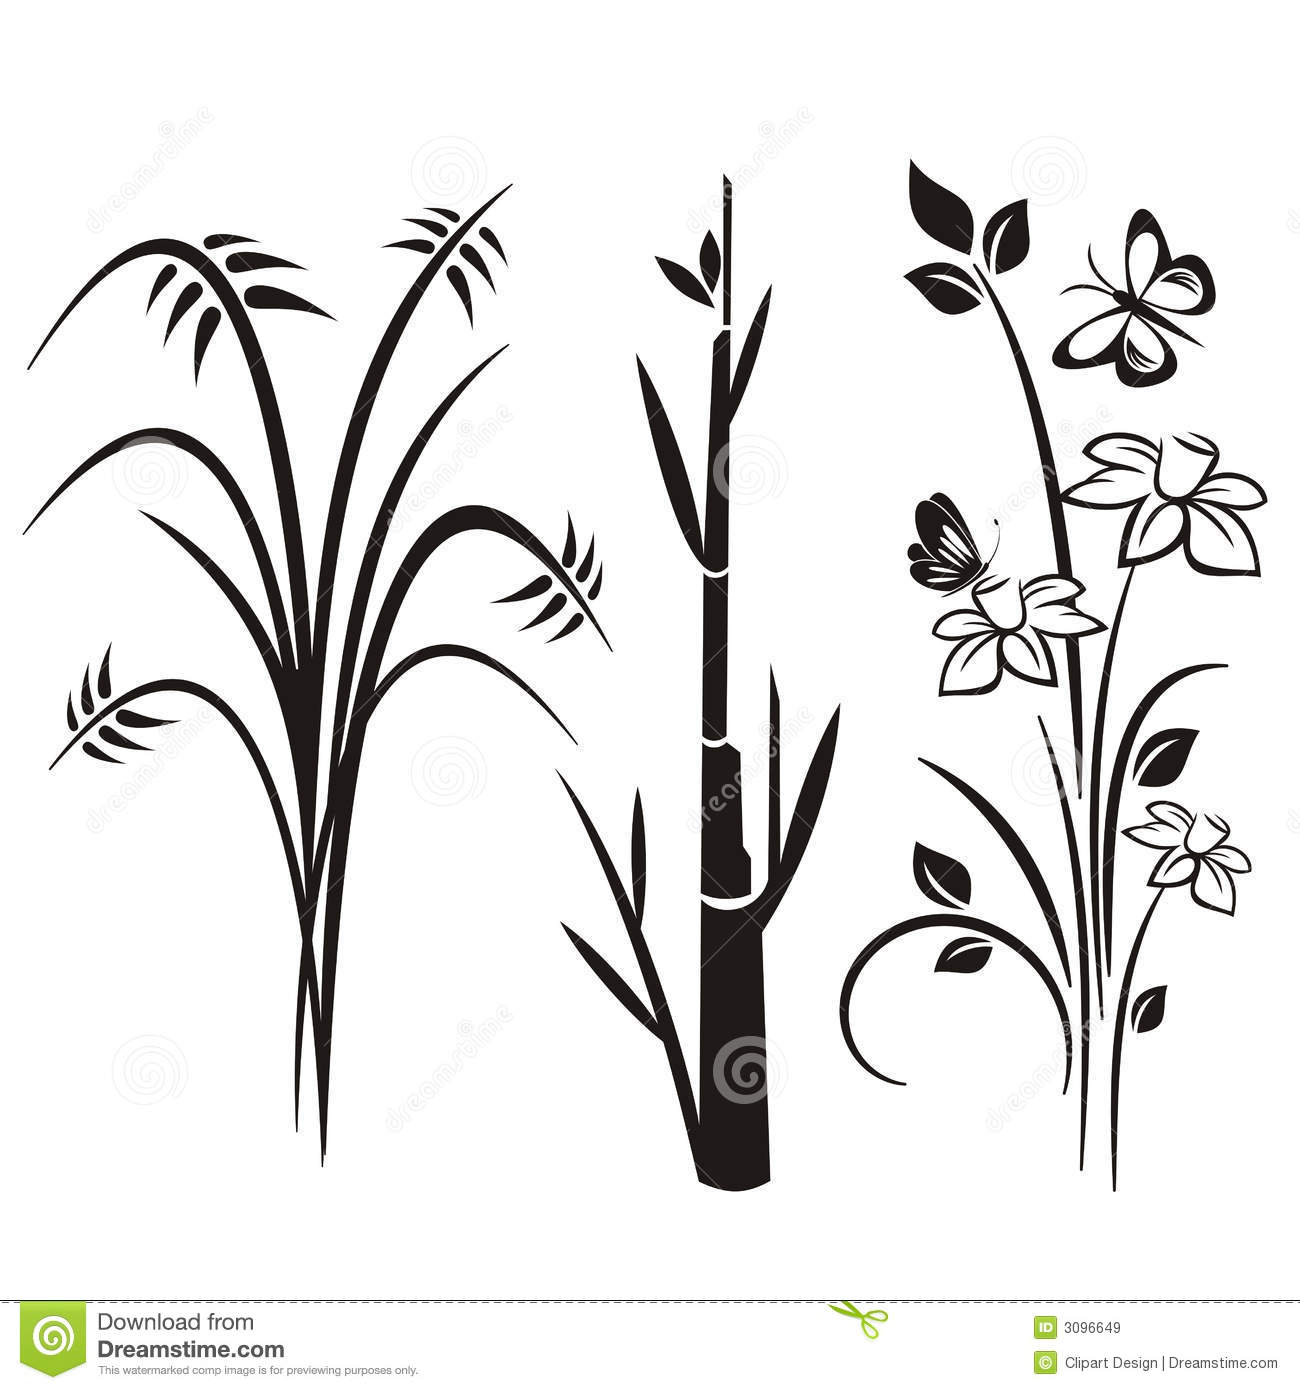 Japanese Designs japanese floral design series stock image - image: 3096651